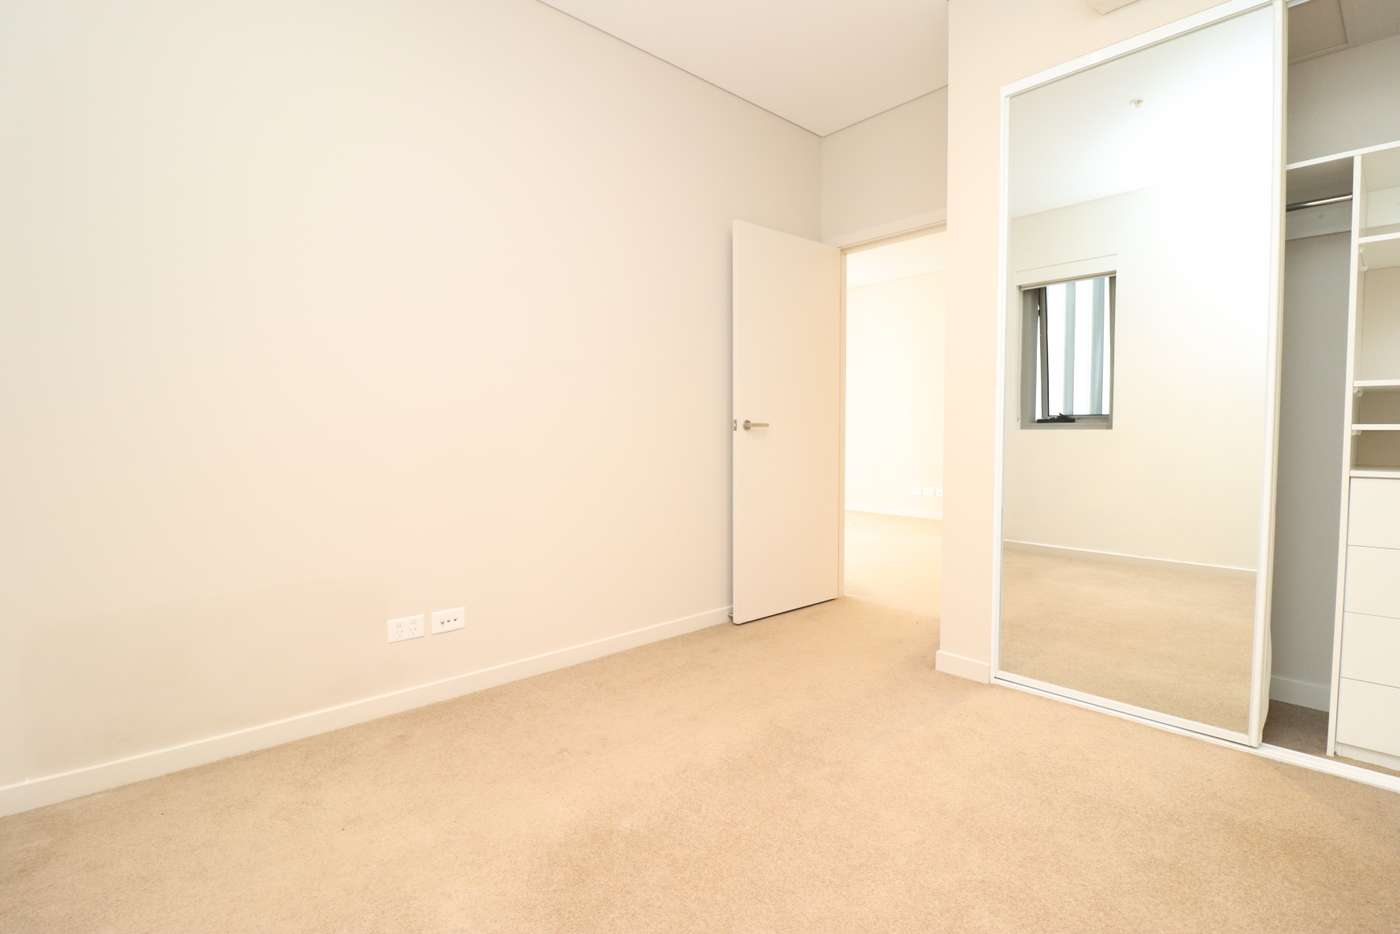 Sixth view of Homely apartment listing, 613/18 Footbridge Boulevard, Wentworth Point NSW 2127